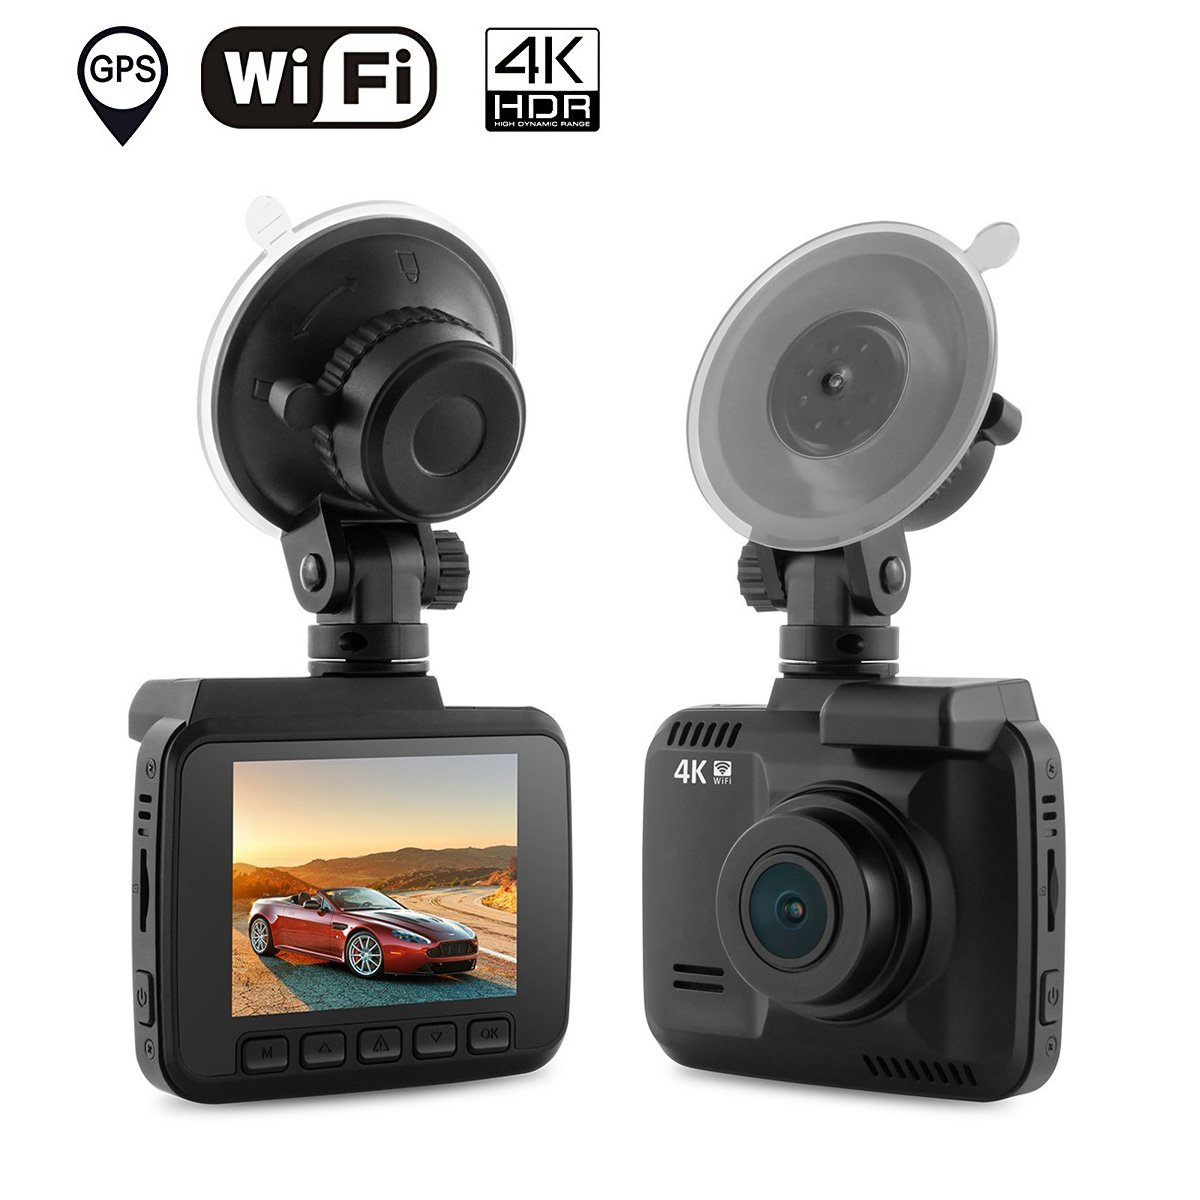 "Dash Cam Car DVR Dashboard Camera Recorder with Built-In WiFi & GPS, 4K FHD, APP Support, G-Sensor, 2.4"" LCD, 150 Degree Wide-Angle Lens, Loop Recording, Great Night Vision, Parking Monitor"